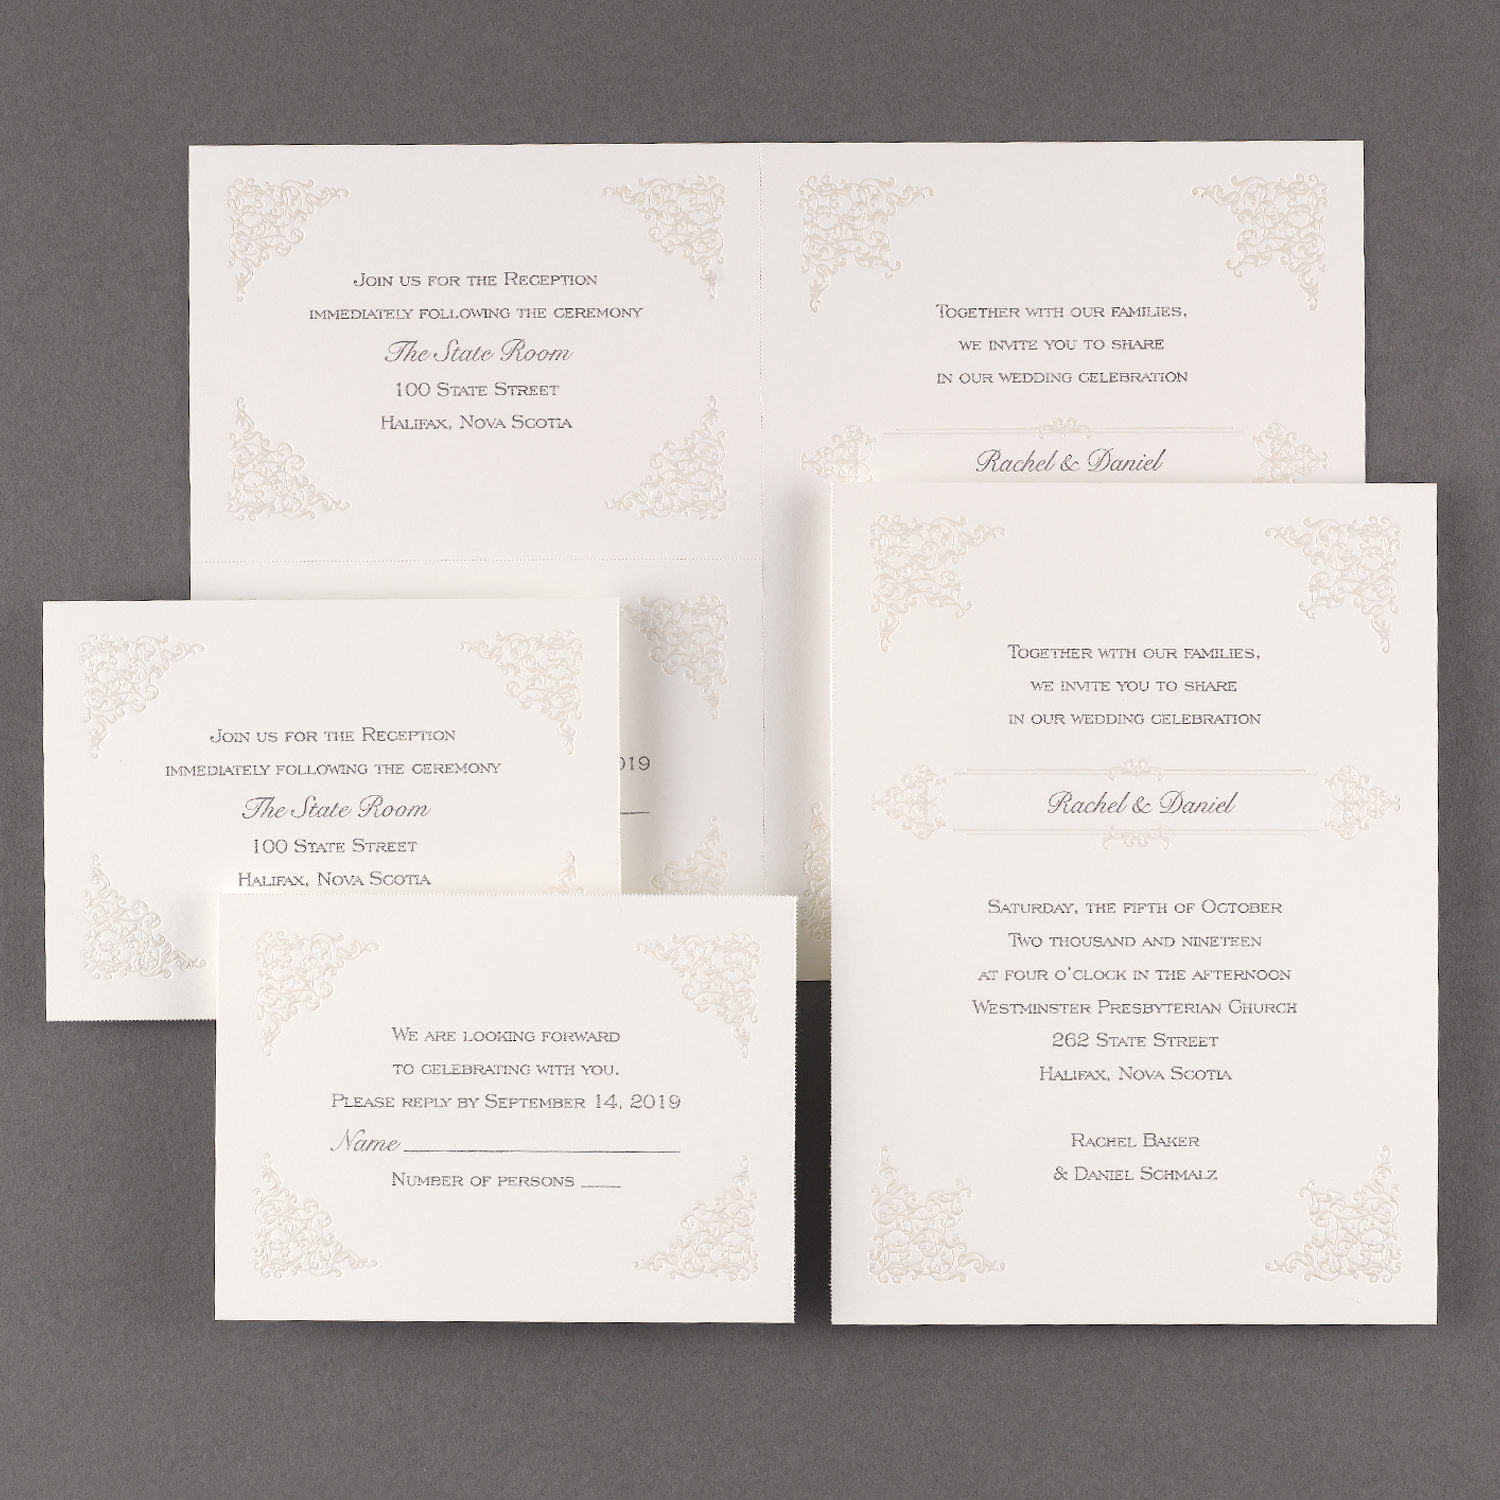 Affordable Style • Persnickety Invitation Studio